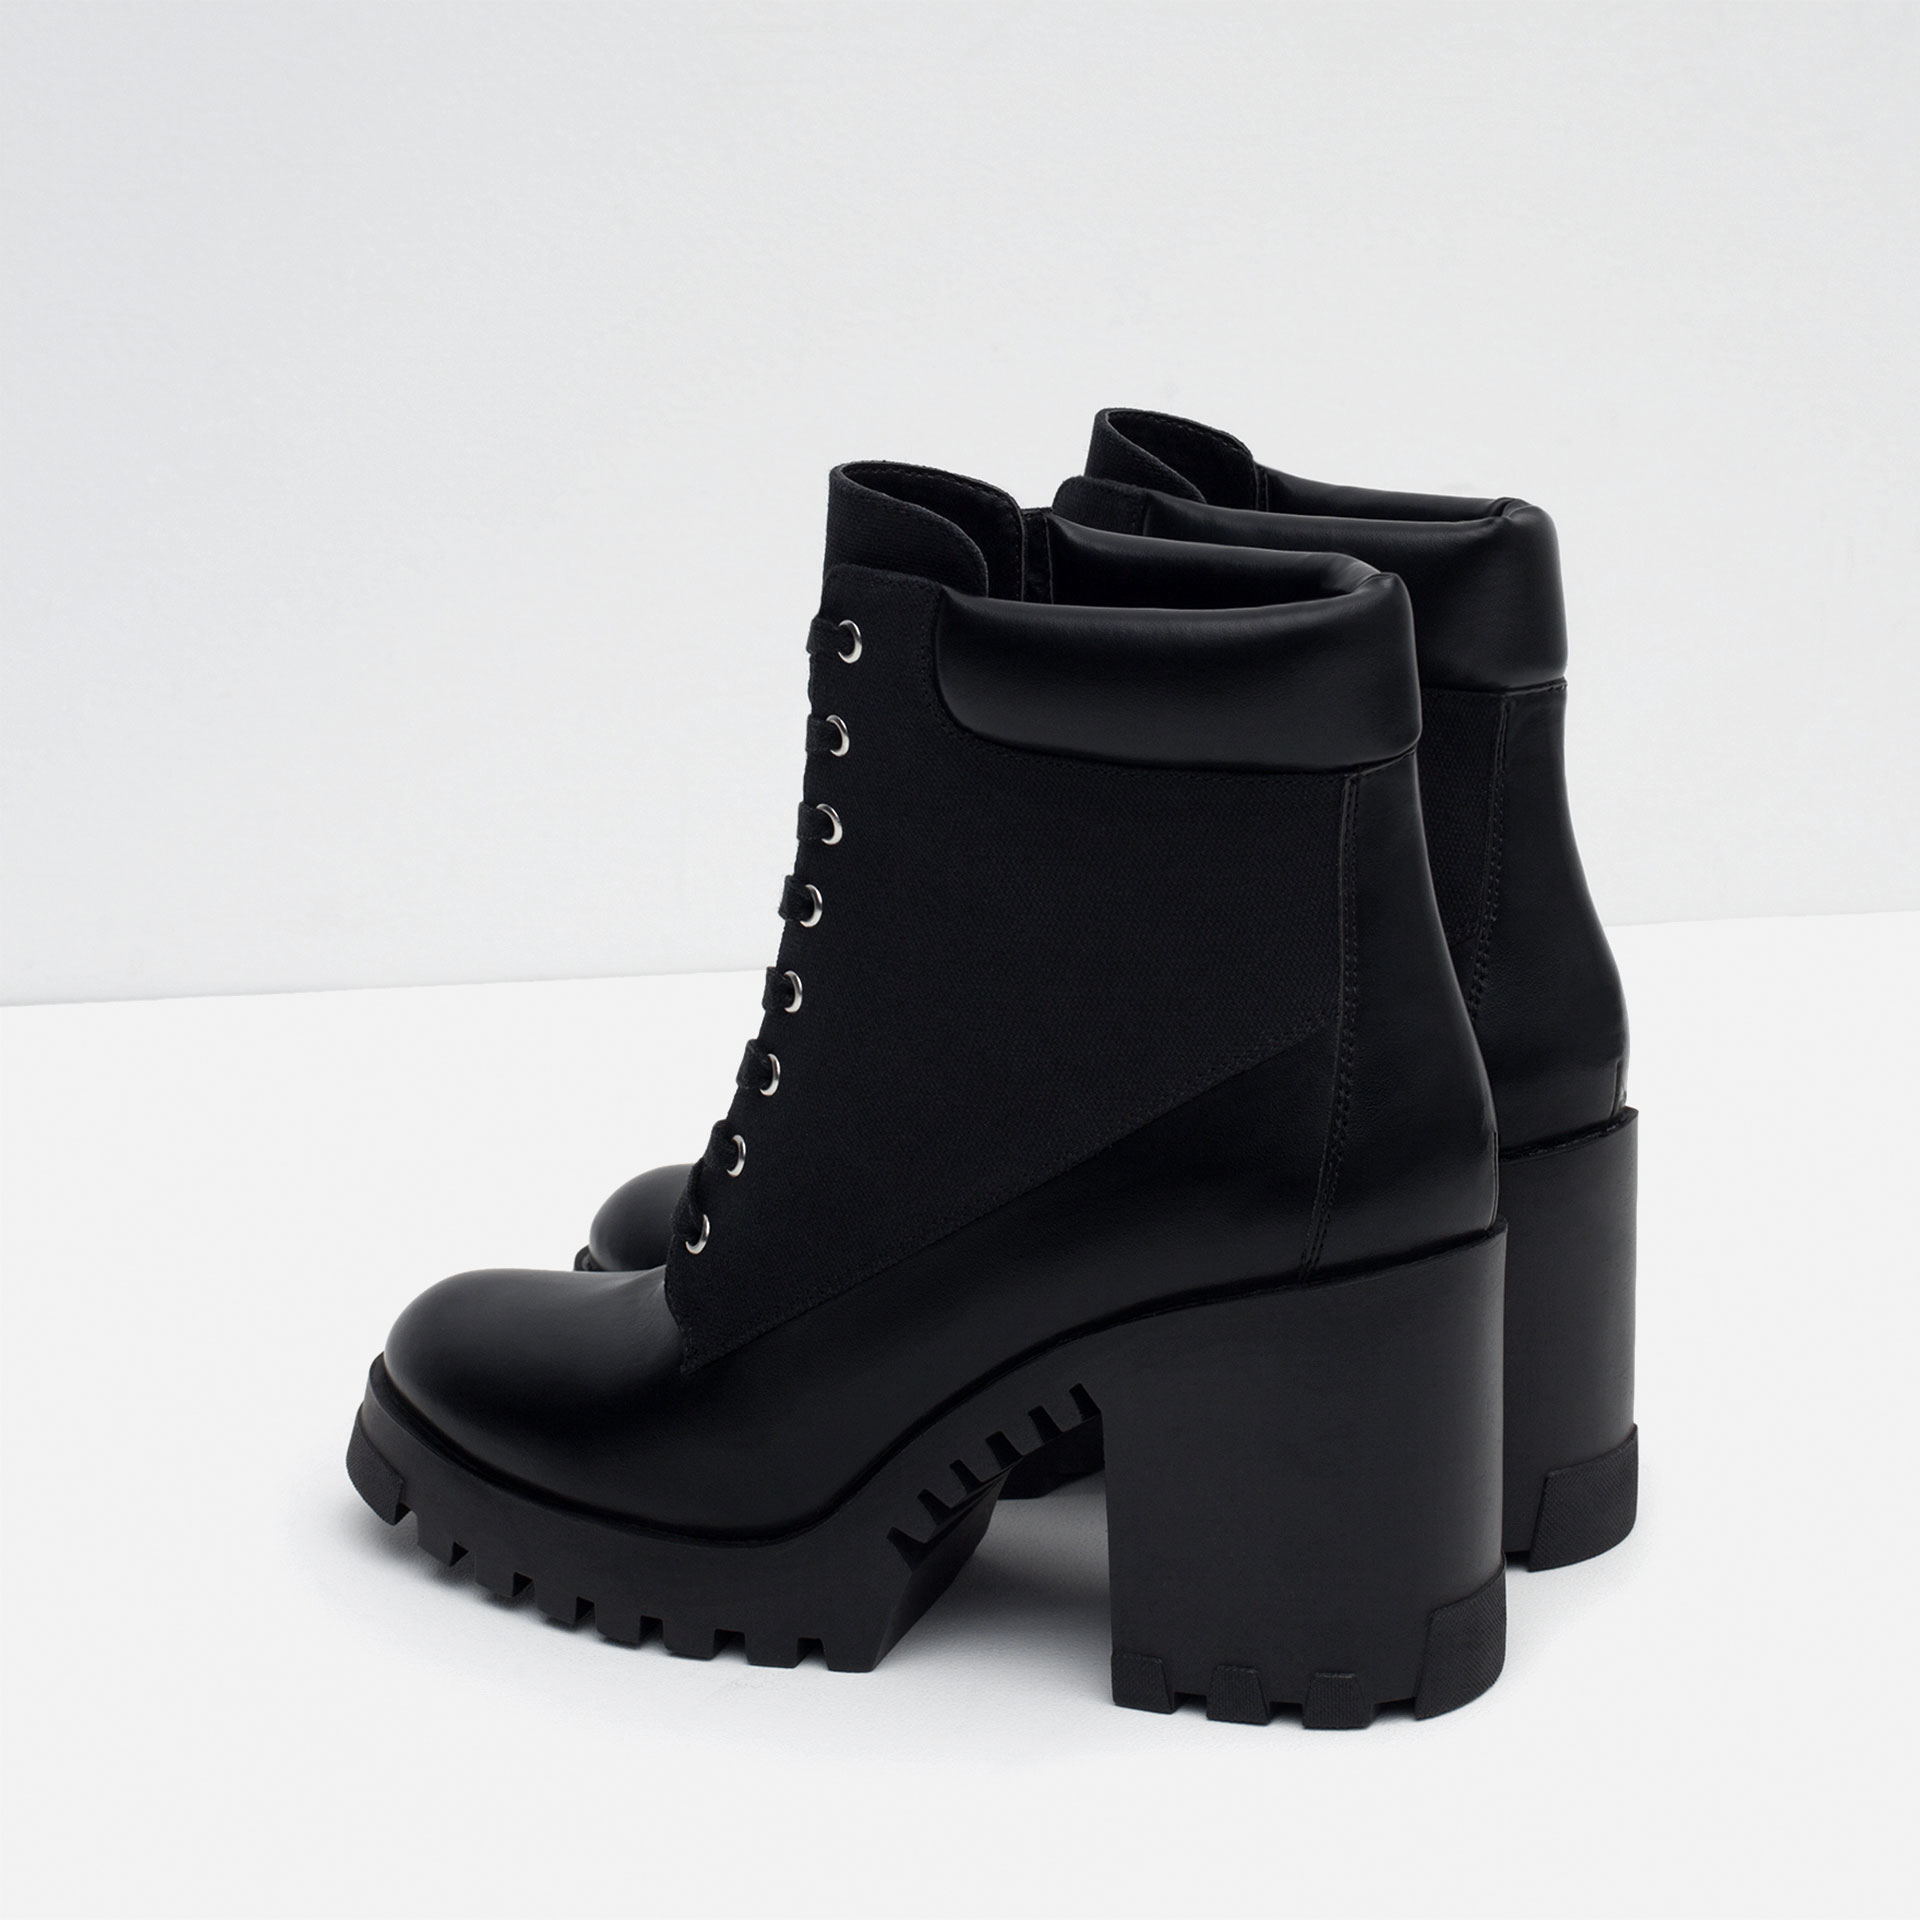 Zara Lace Up High Heel Ankle Boots In Black Lyst